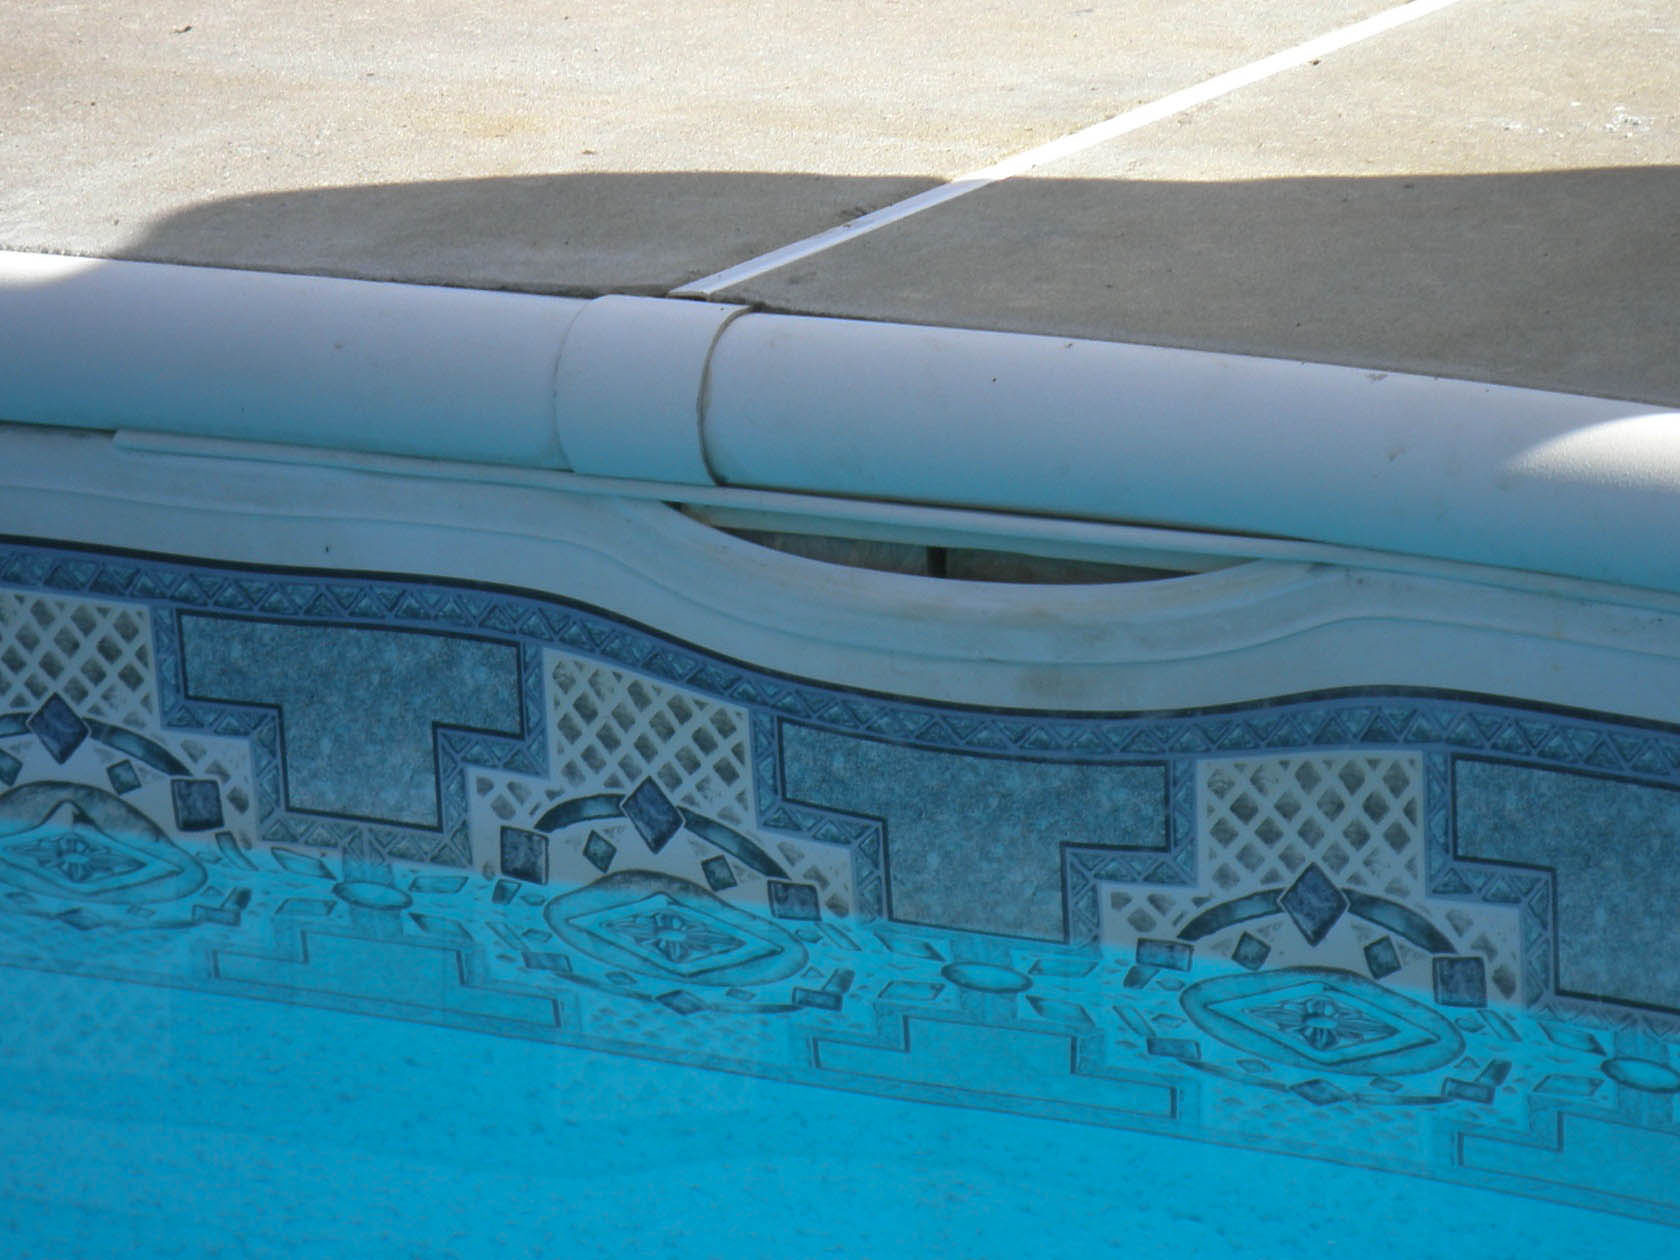 Liner sure parson pools dalton ga the liner sure advantage - Witte pool liner ...